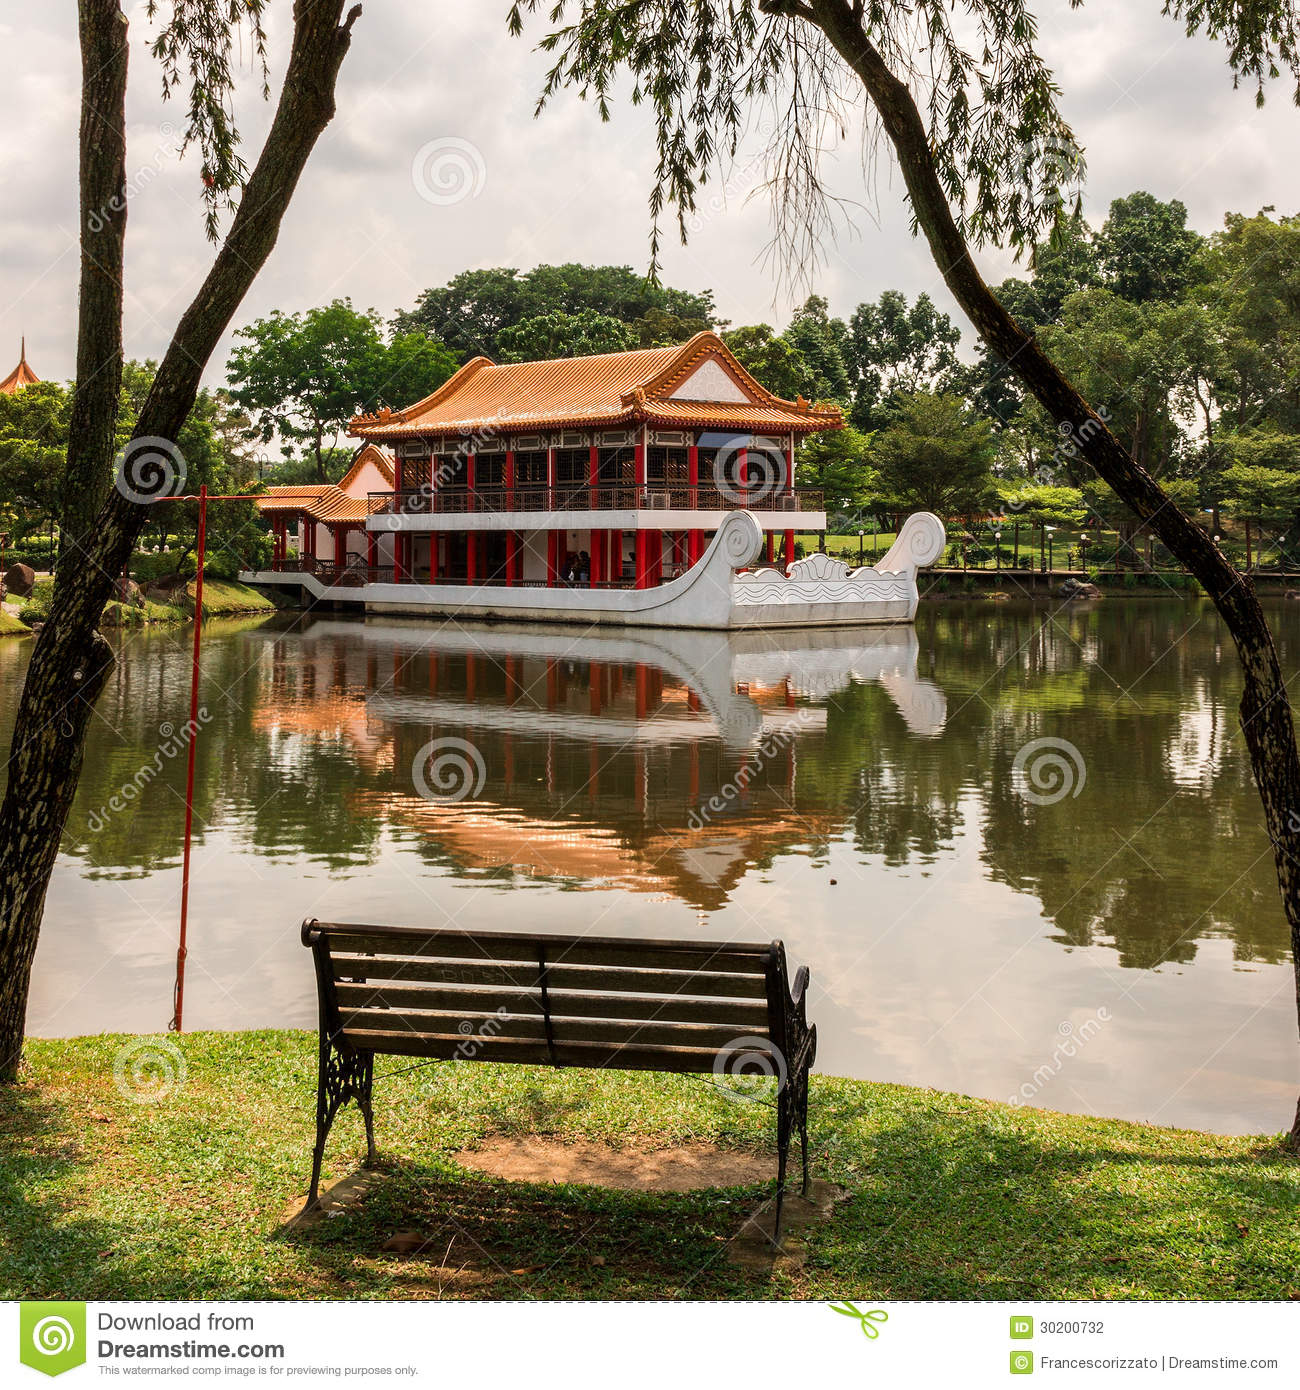 bench in a chinese garden. singapore stock photo - image: 30200732